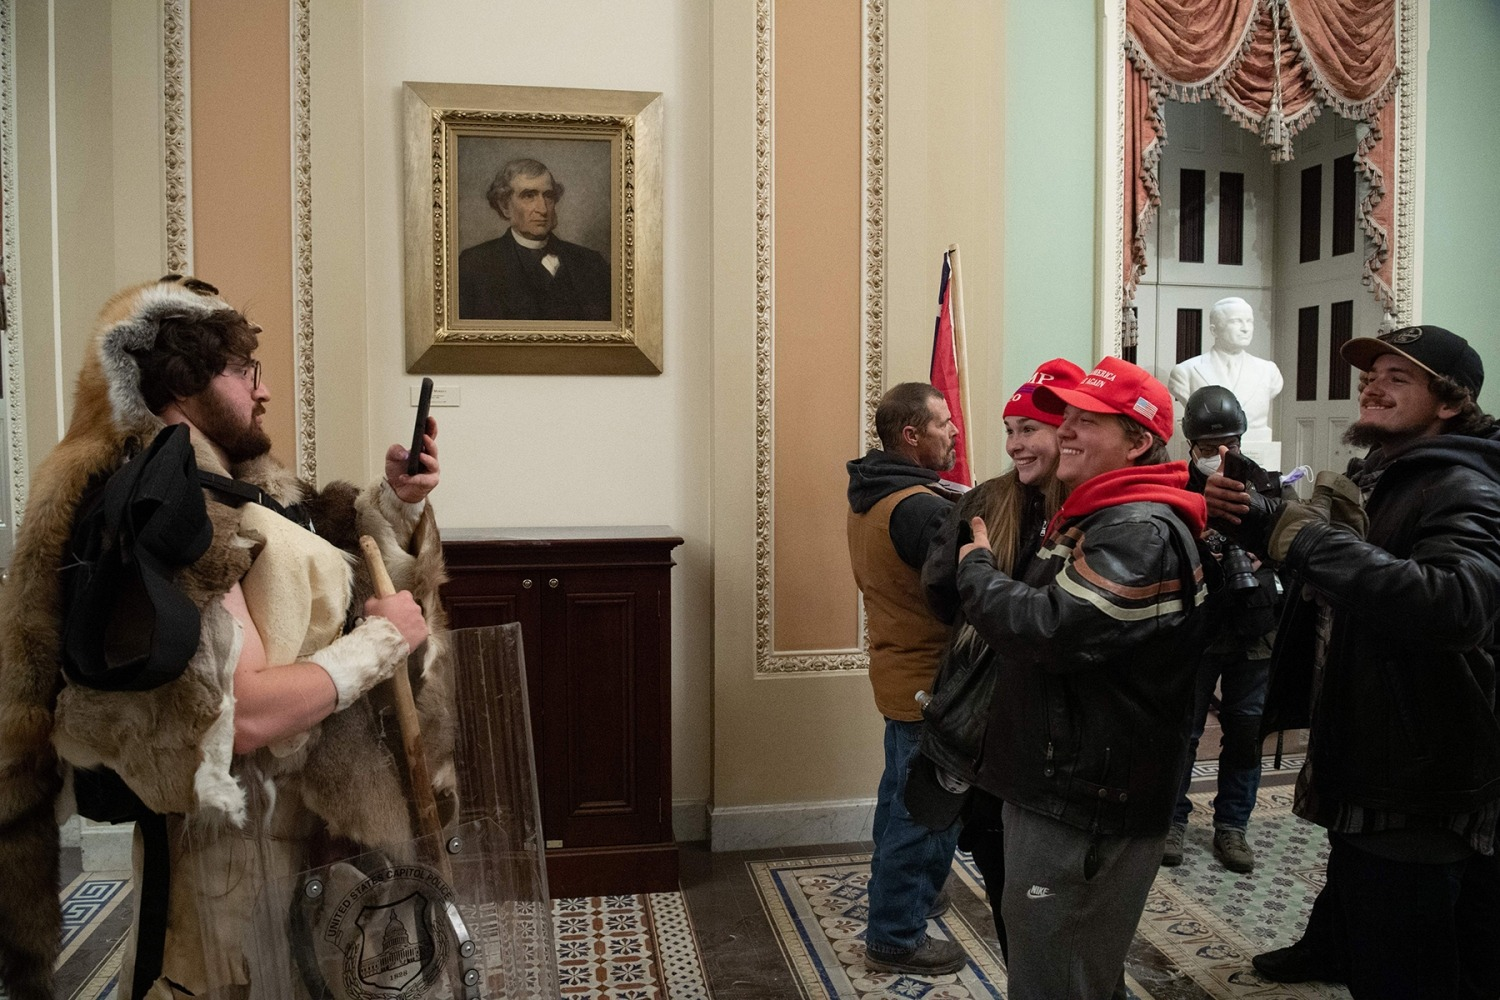 Supporters of US President Donald Trump protest in the US Capitol Rotunda on January 6, 2021, in Washington, DC. - Demonstrators breeched security and entered the Capitol as Congress debated the a 2020 presidential election Electoral Vote Certification. (Photo by SAUL LOEB / AFP) (Photo by SAUL LOEB/AFP via Getty Images)